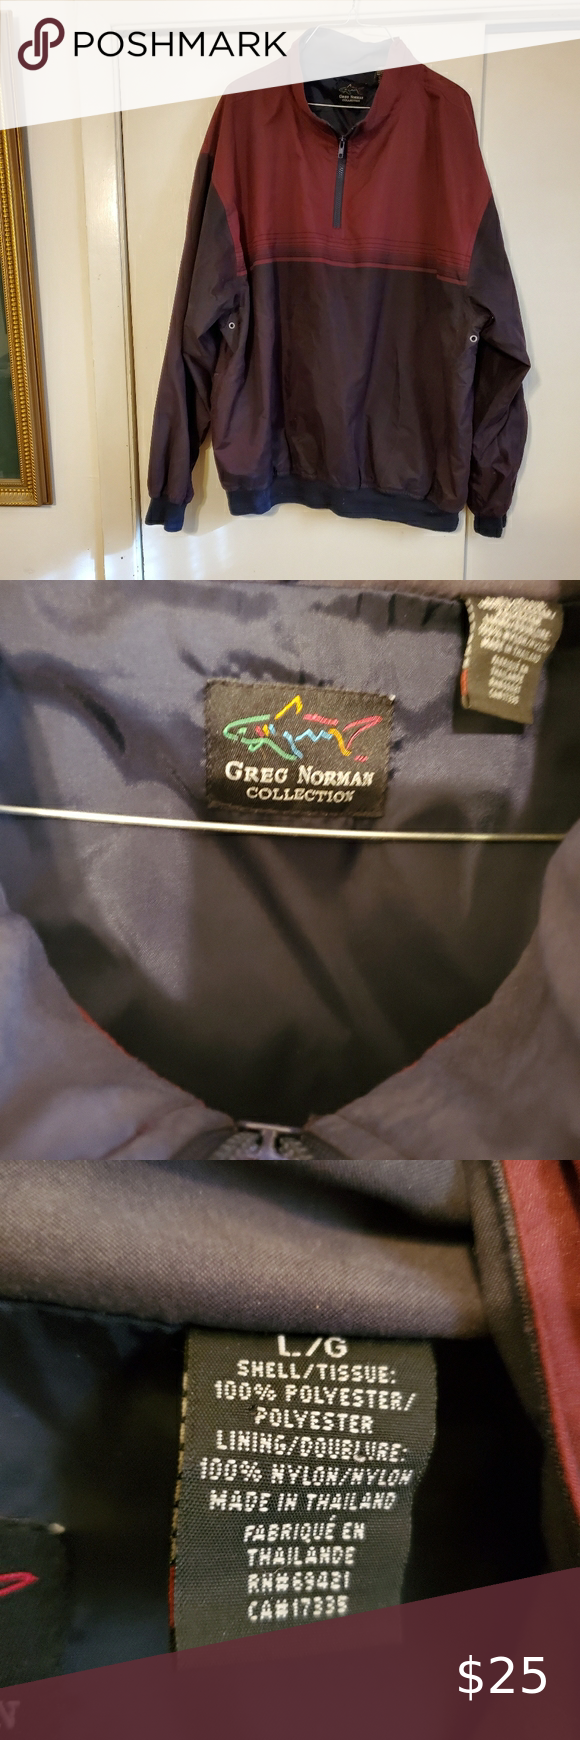 Greg Norman Collection Zippered Pullover Jacket In 2020 Pullover Jacket Pullover Clothes Design